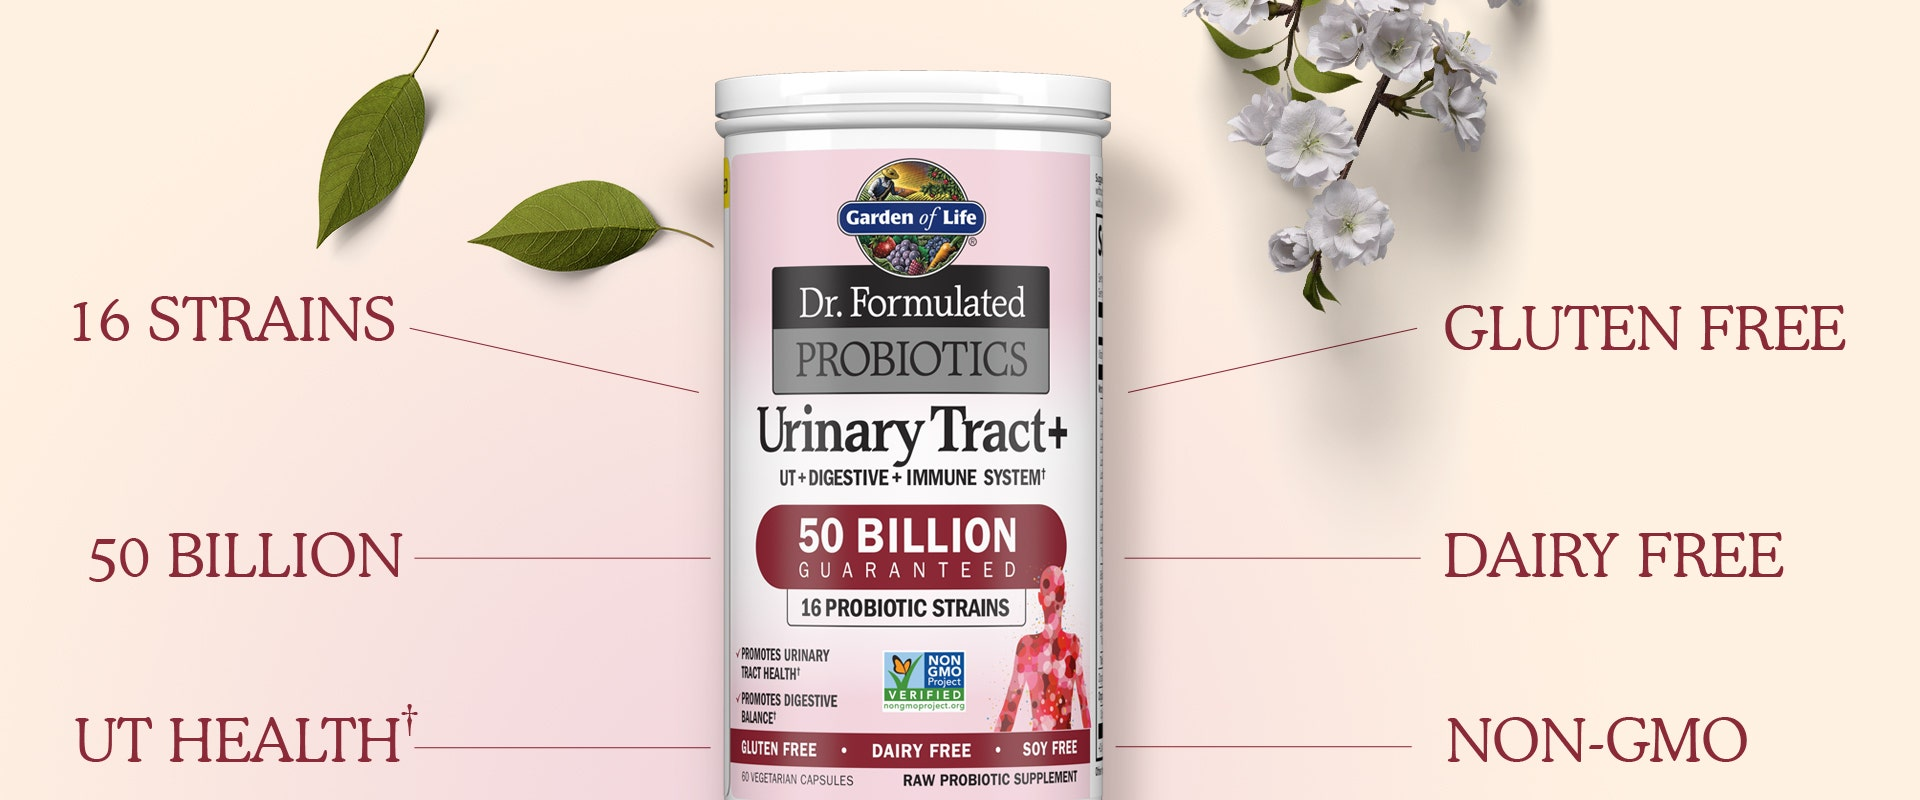 dr formulated probiotics urinary tract from garden of life